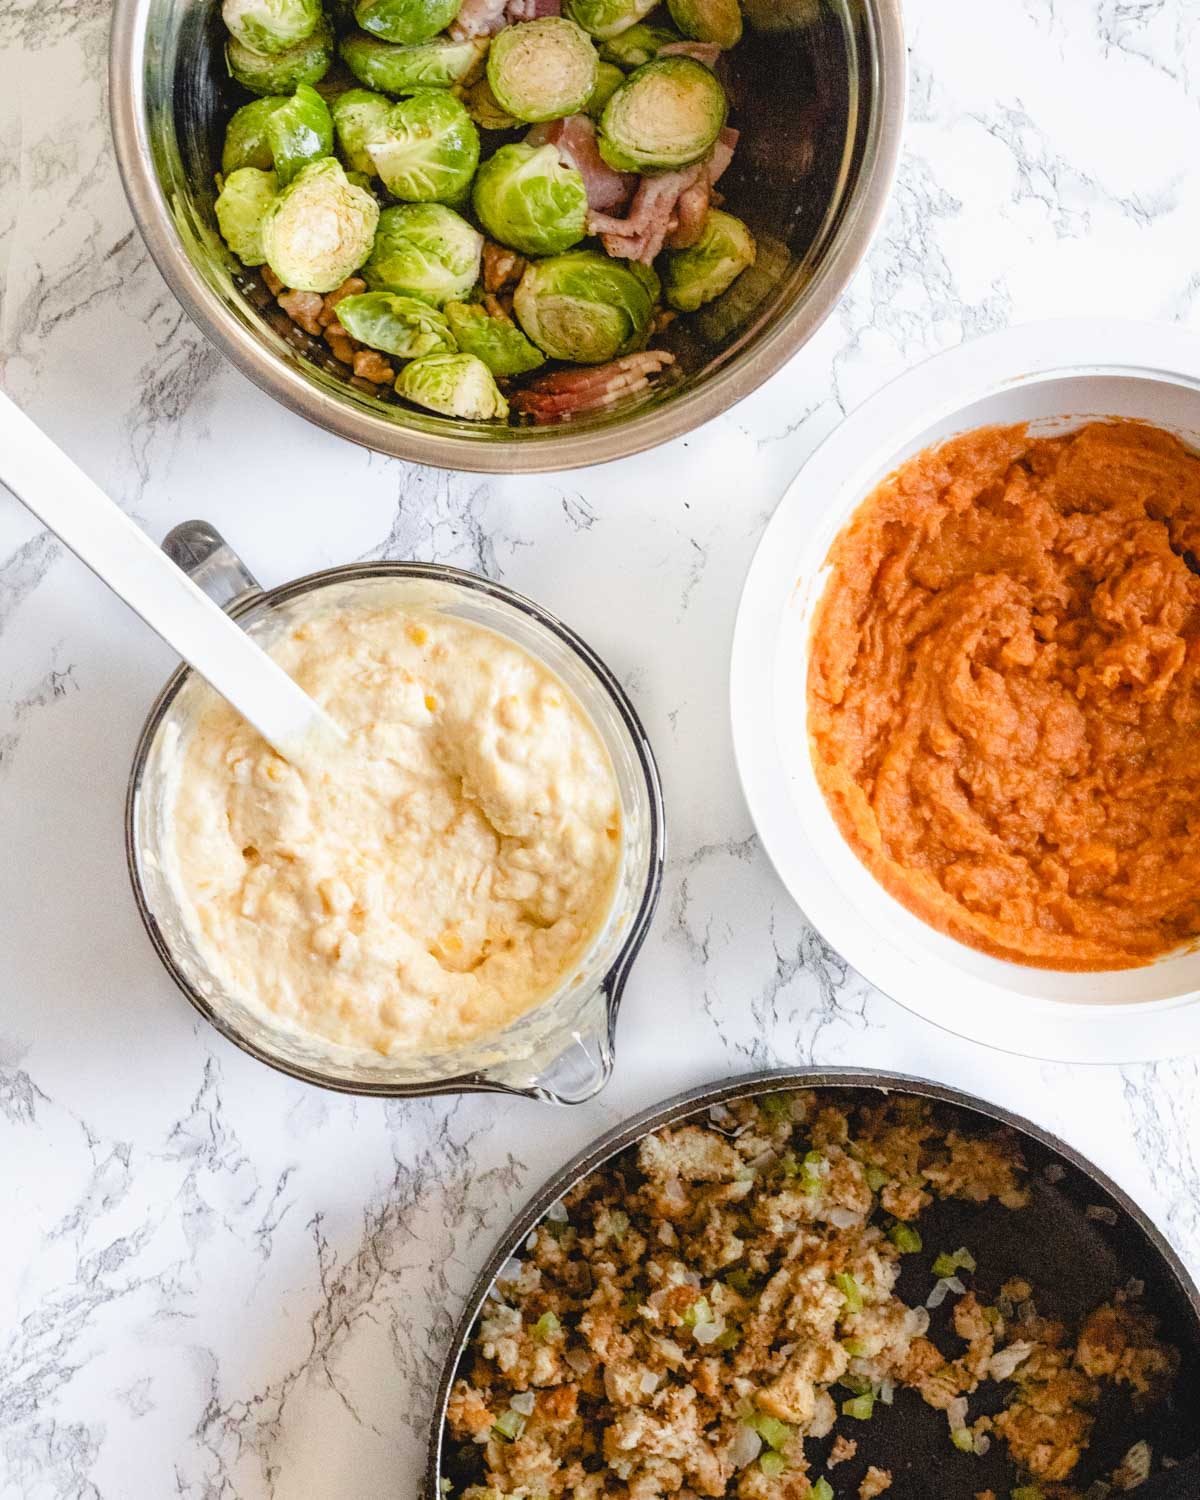 4 side dishes in separate bowls: Brussels sprouts, corn casserole, sweet potato casserole, and stuffing.